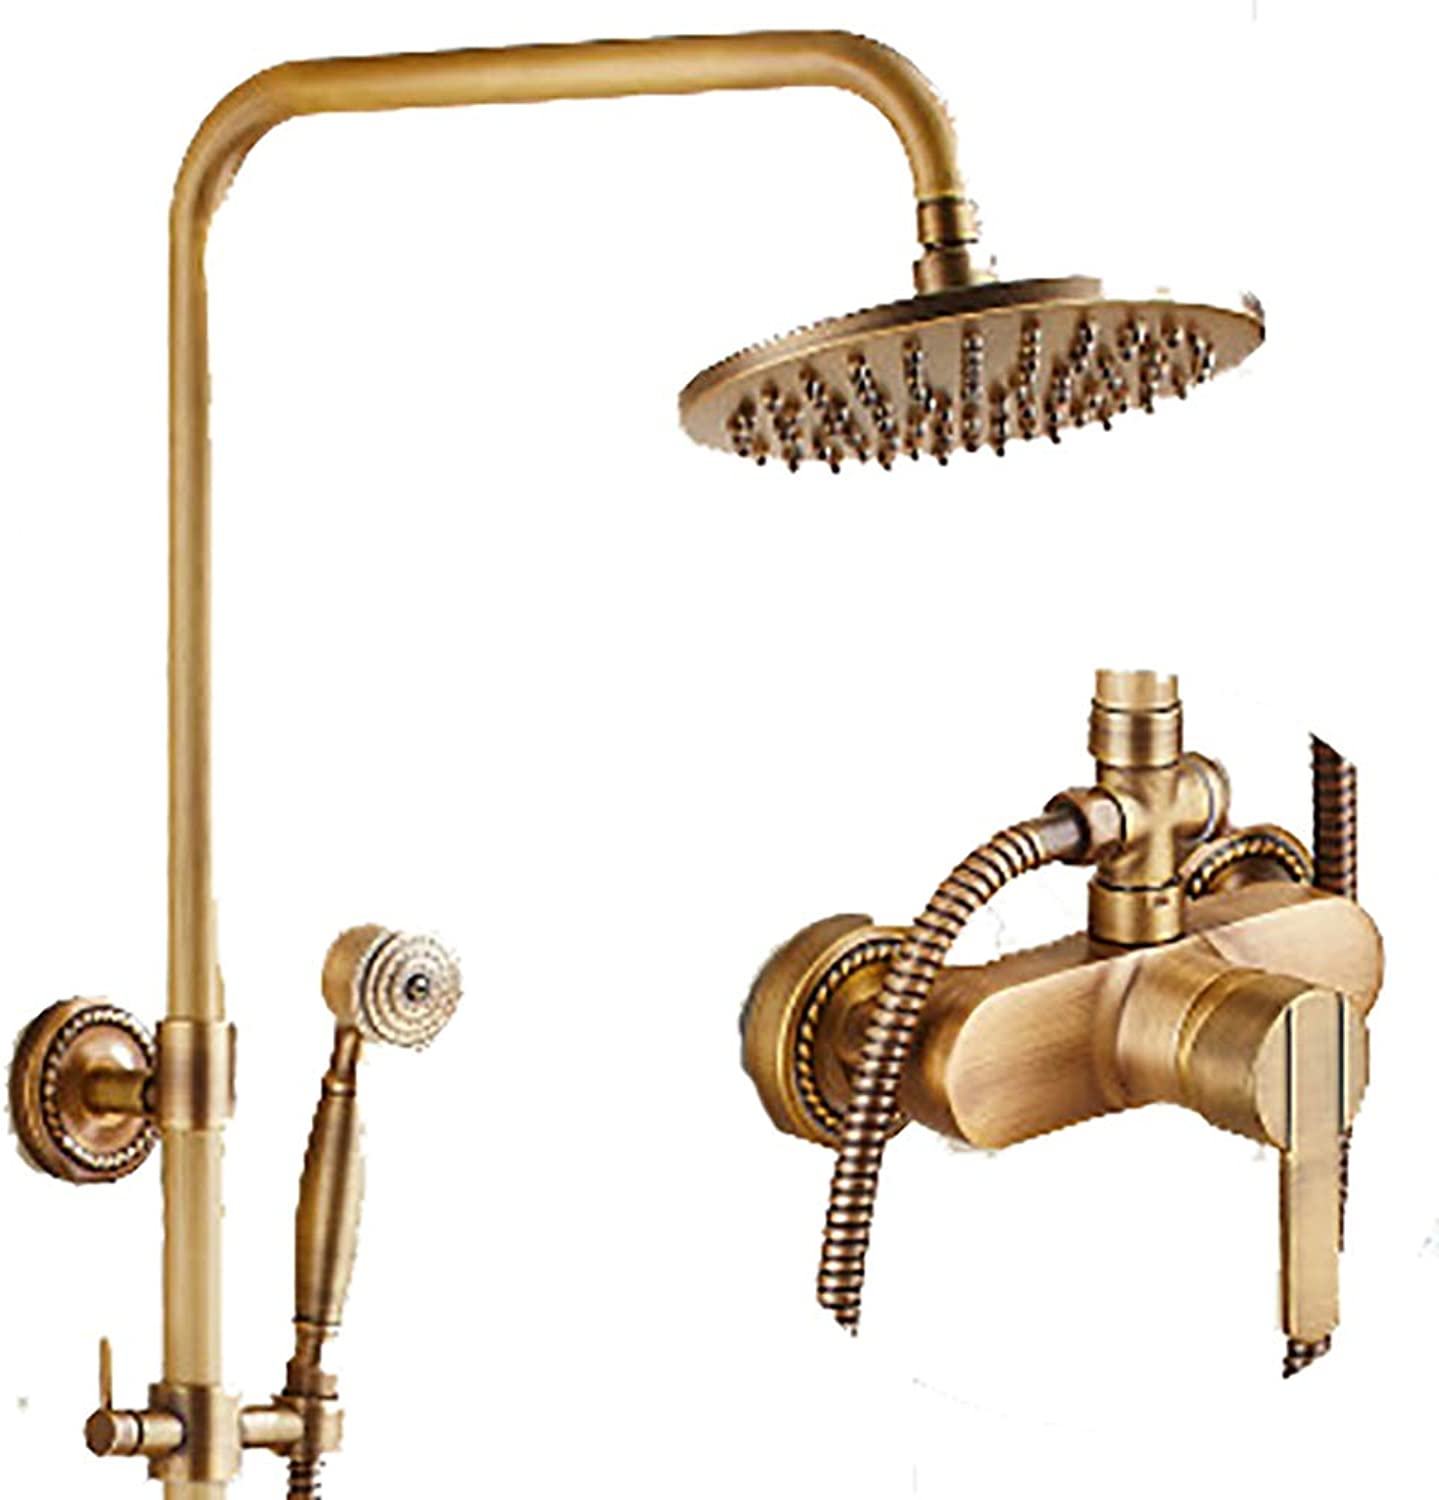 WYRSXPY Shower Bath Vintage Fashion Shower Set, Copper Material, Wall-mounted Family hotel Cold hot Faucet, 3-hole Inssizetion (color   Brass, Size   G)